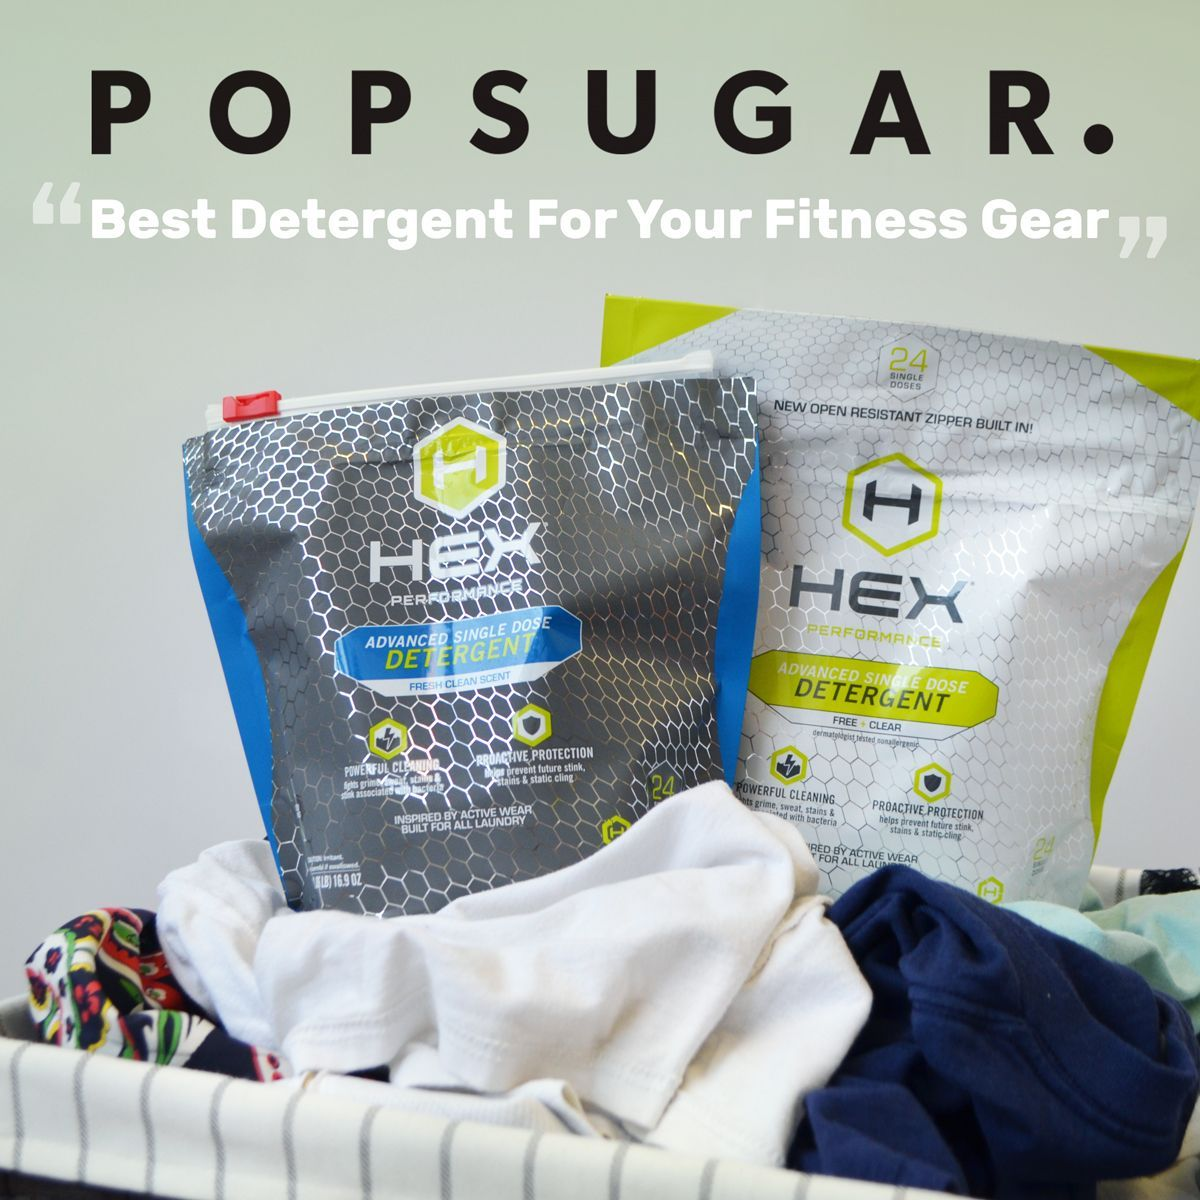 Hex Performance Free Clear Advanced Laundry Detergent With